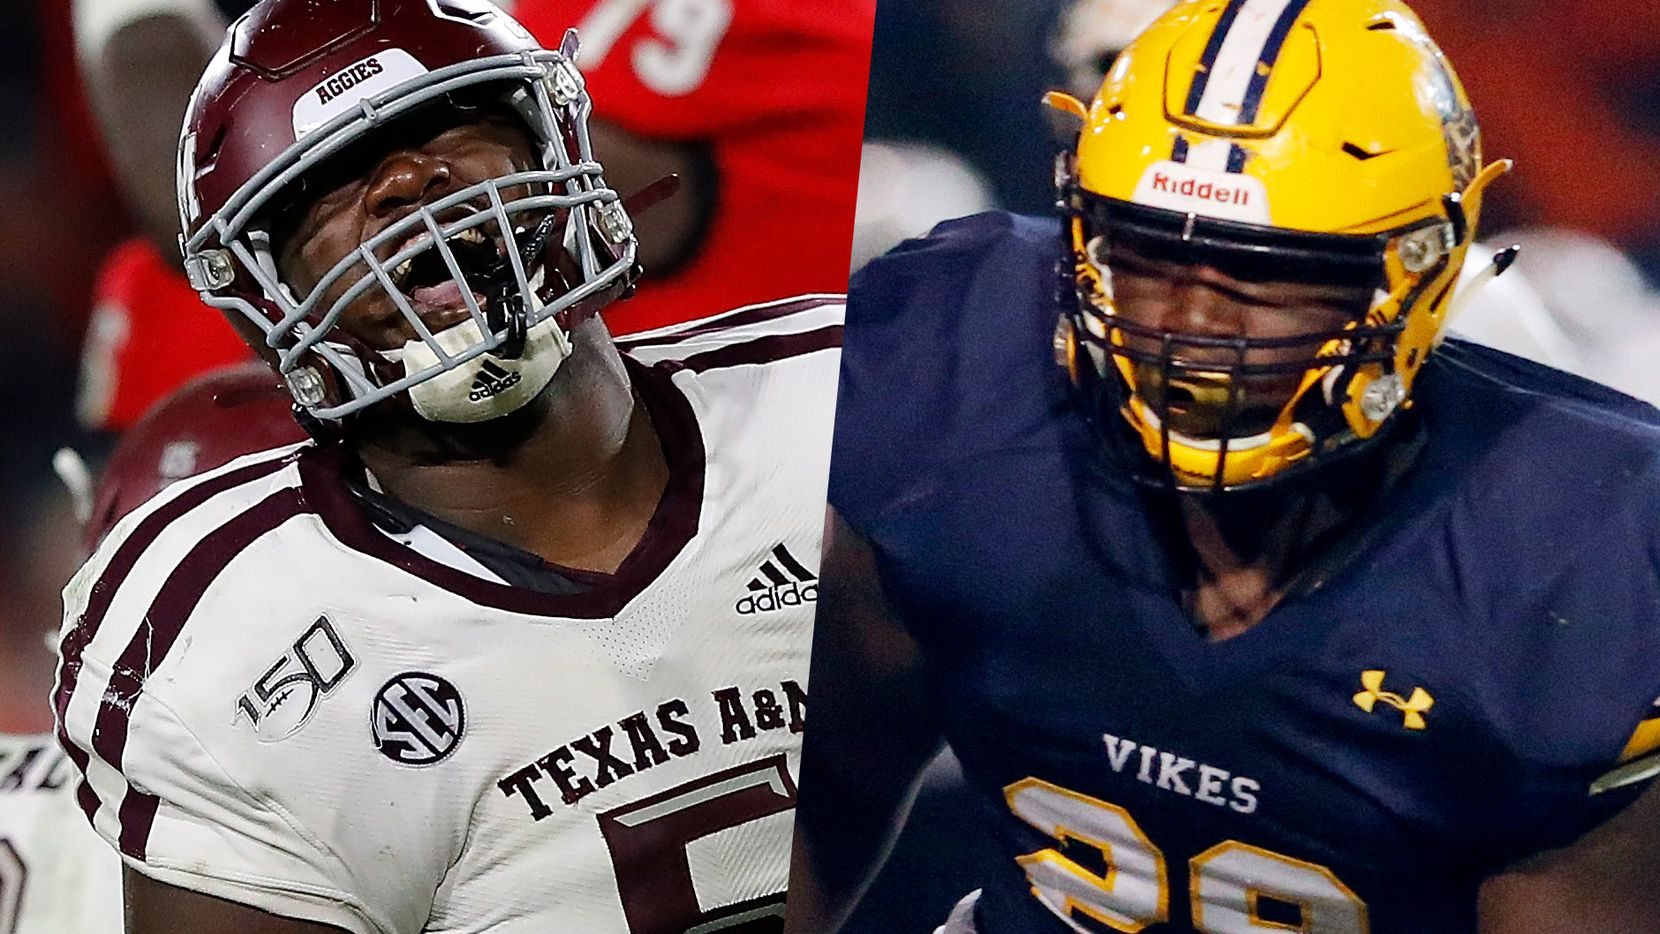 Bobby Brown with Texas A&M in 2019 (left) and with Arlington Lamar in 2017.